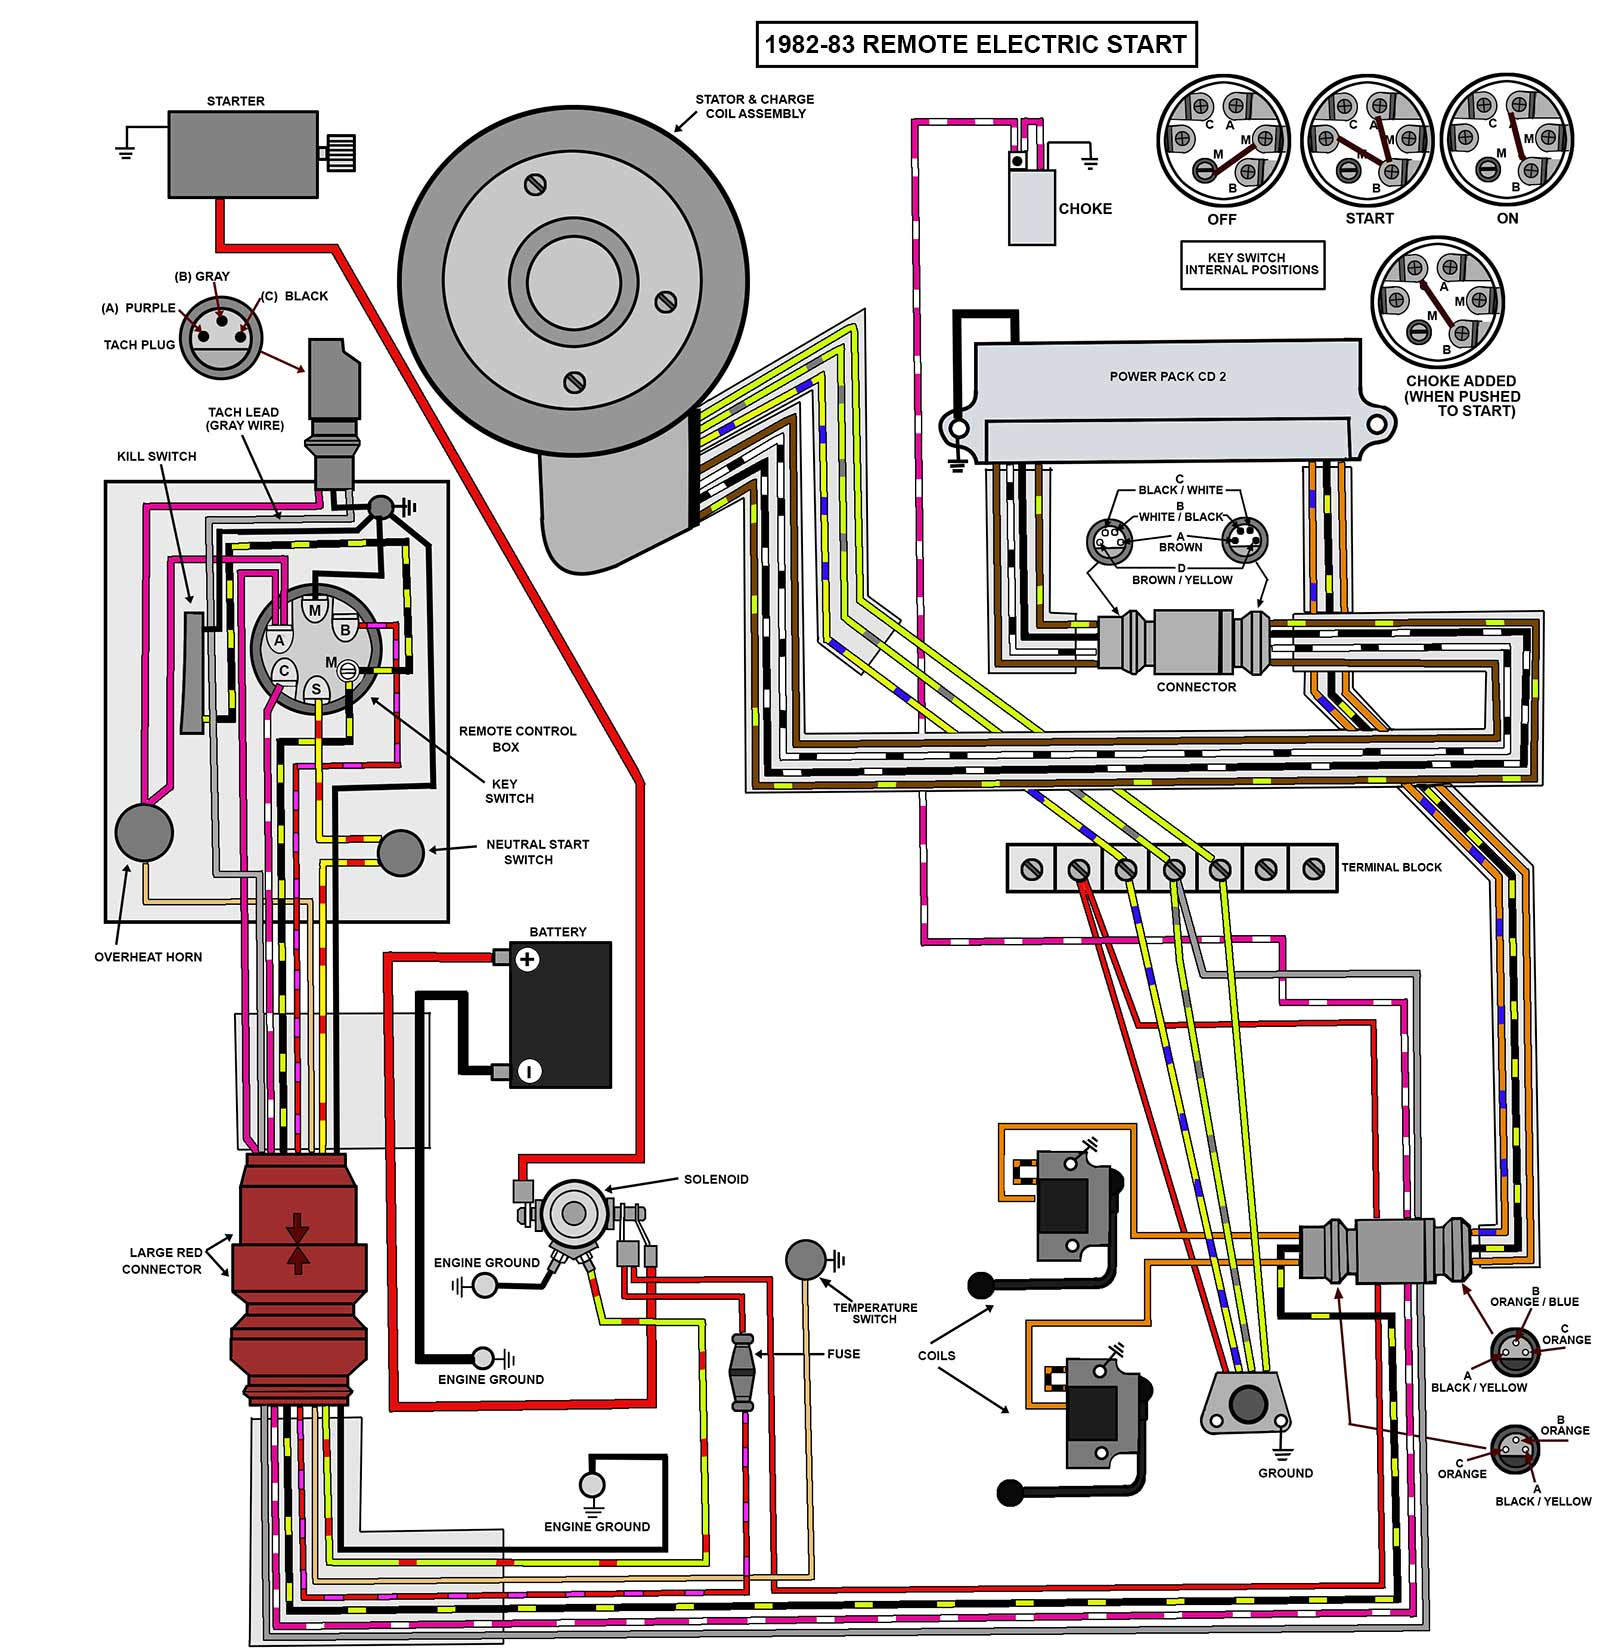 48 hp evinrude wiring diagram wiring diagram 48 Hp Evinrude Wiring Diagram 48 hp evinrude wiring diagram wiring